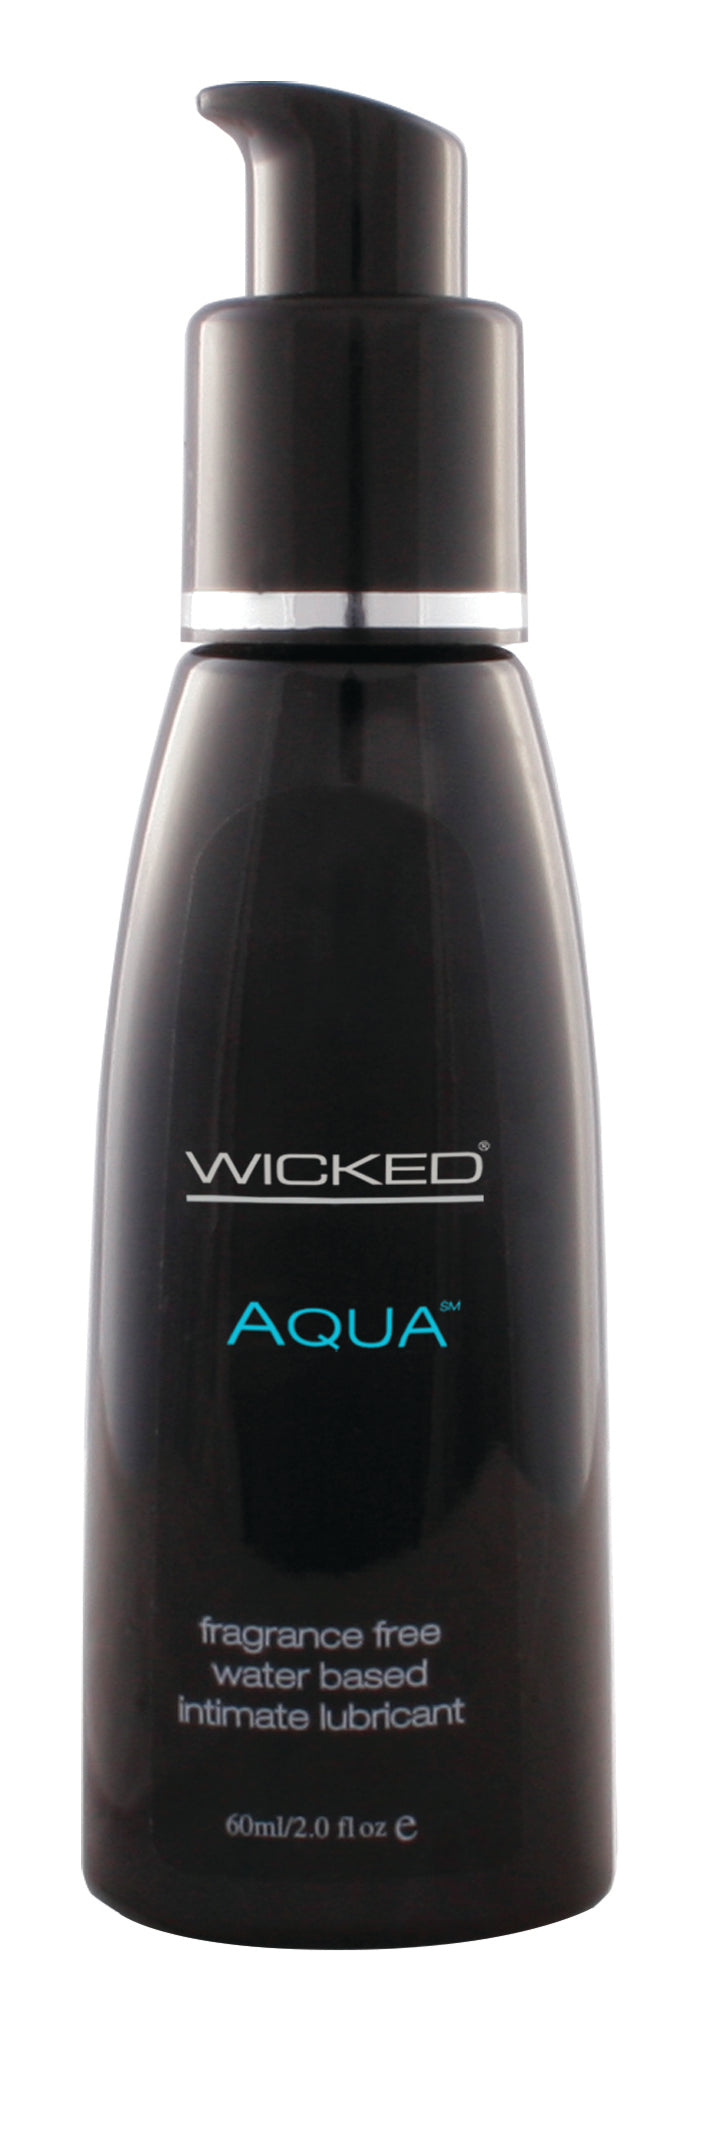 Wicked Aqua Water Based Fragrance-Free Lubricant 60ml Pump Bottle